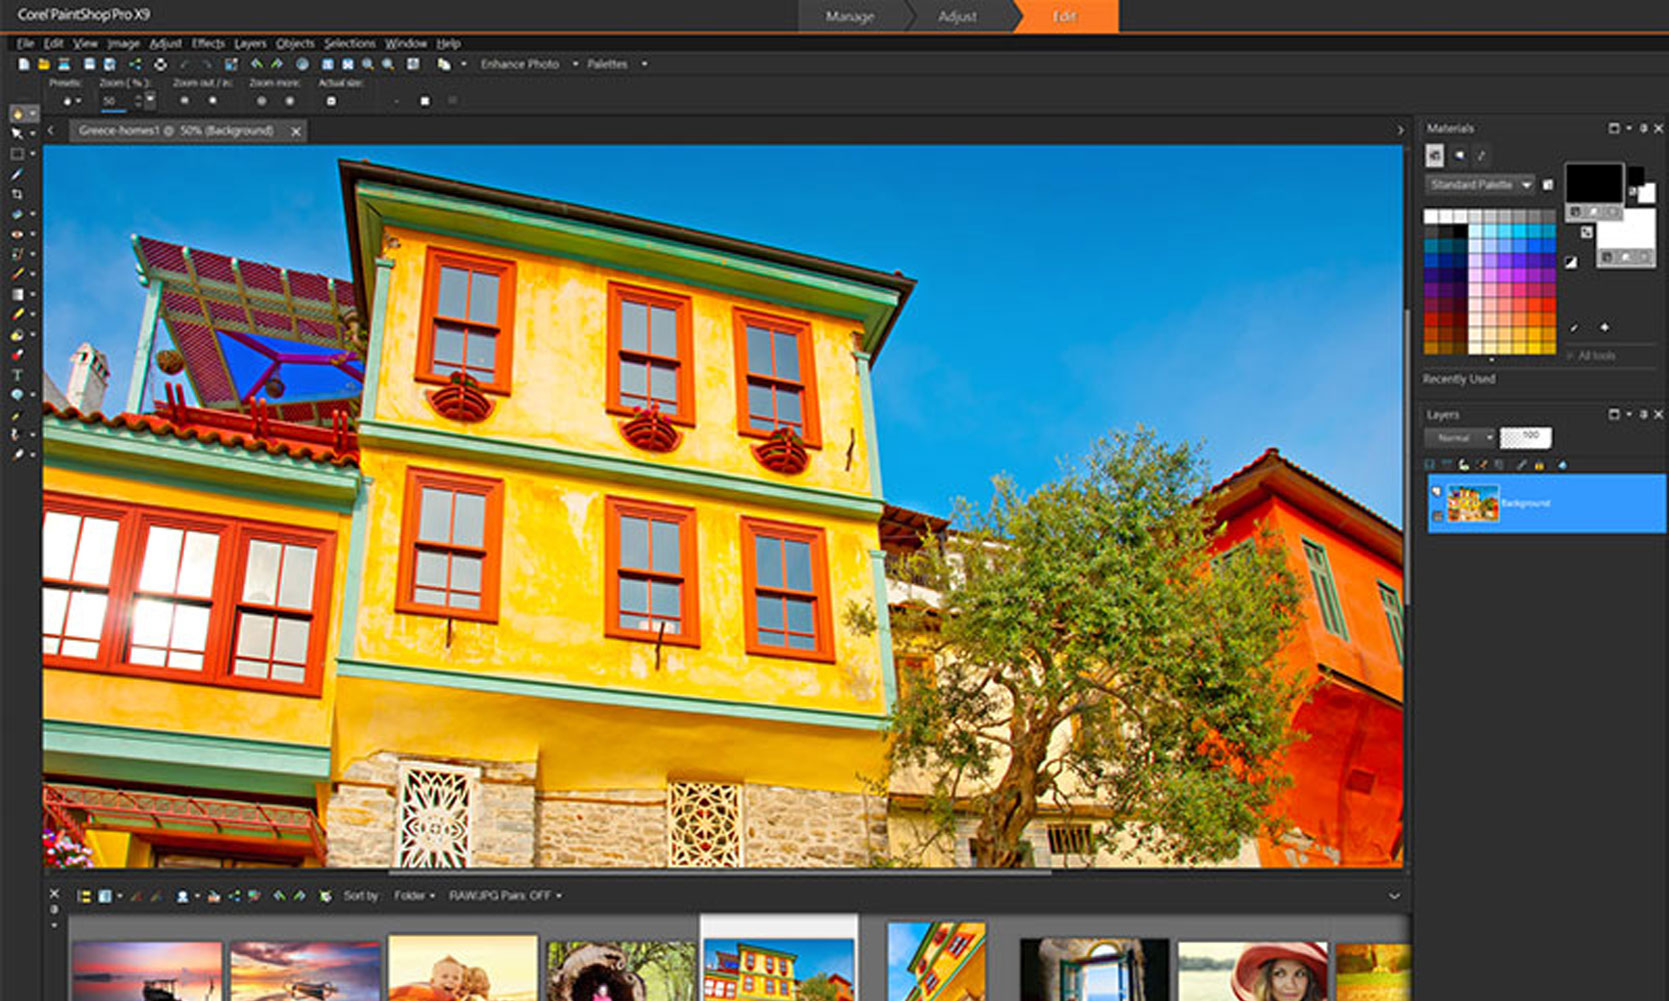 Paint Shop Pro X9 - image editor alternative to Photoshop